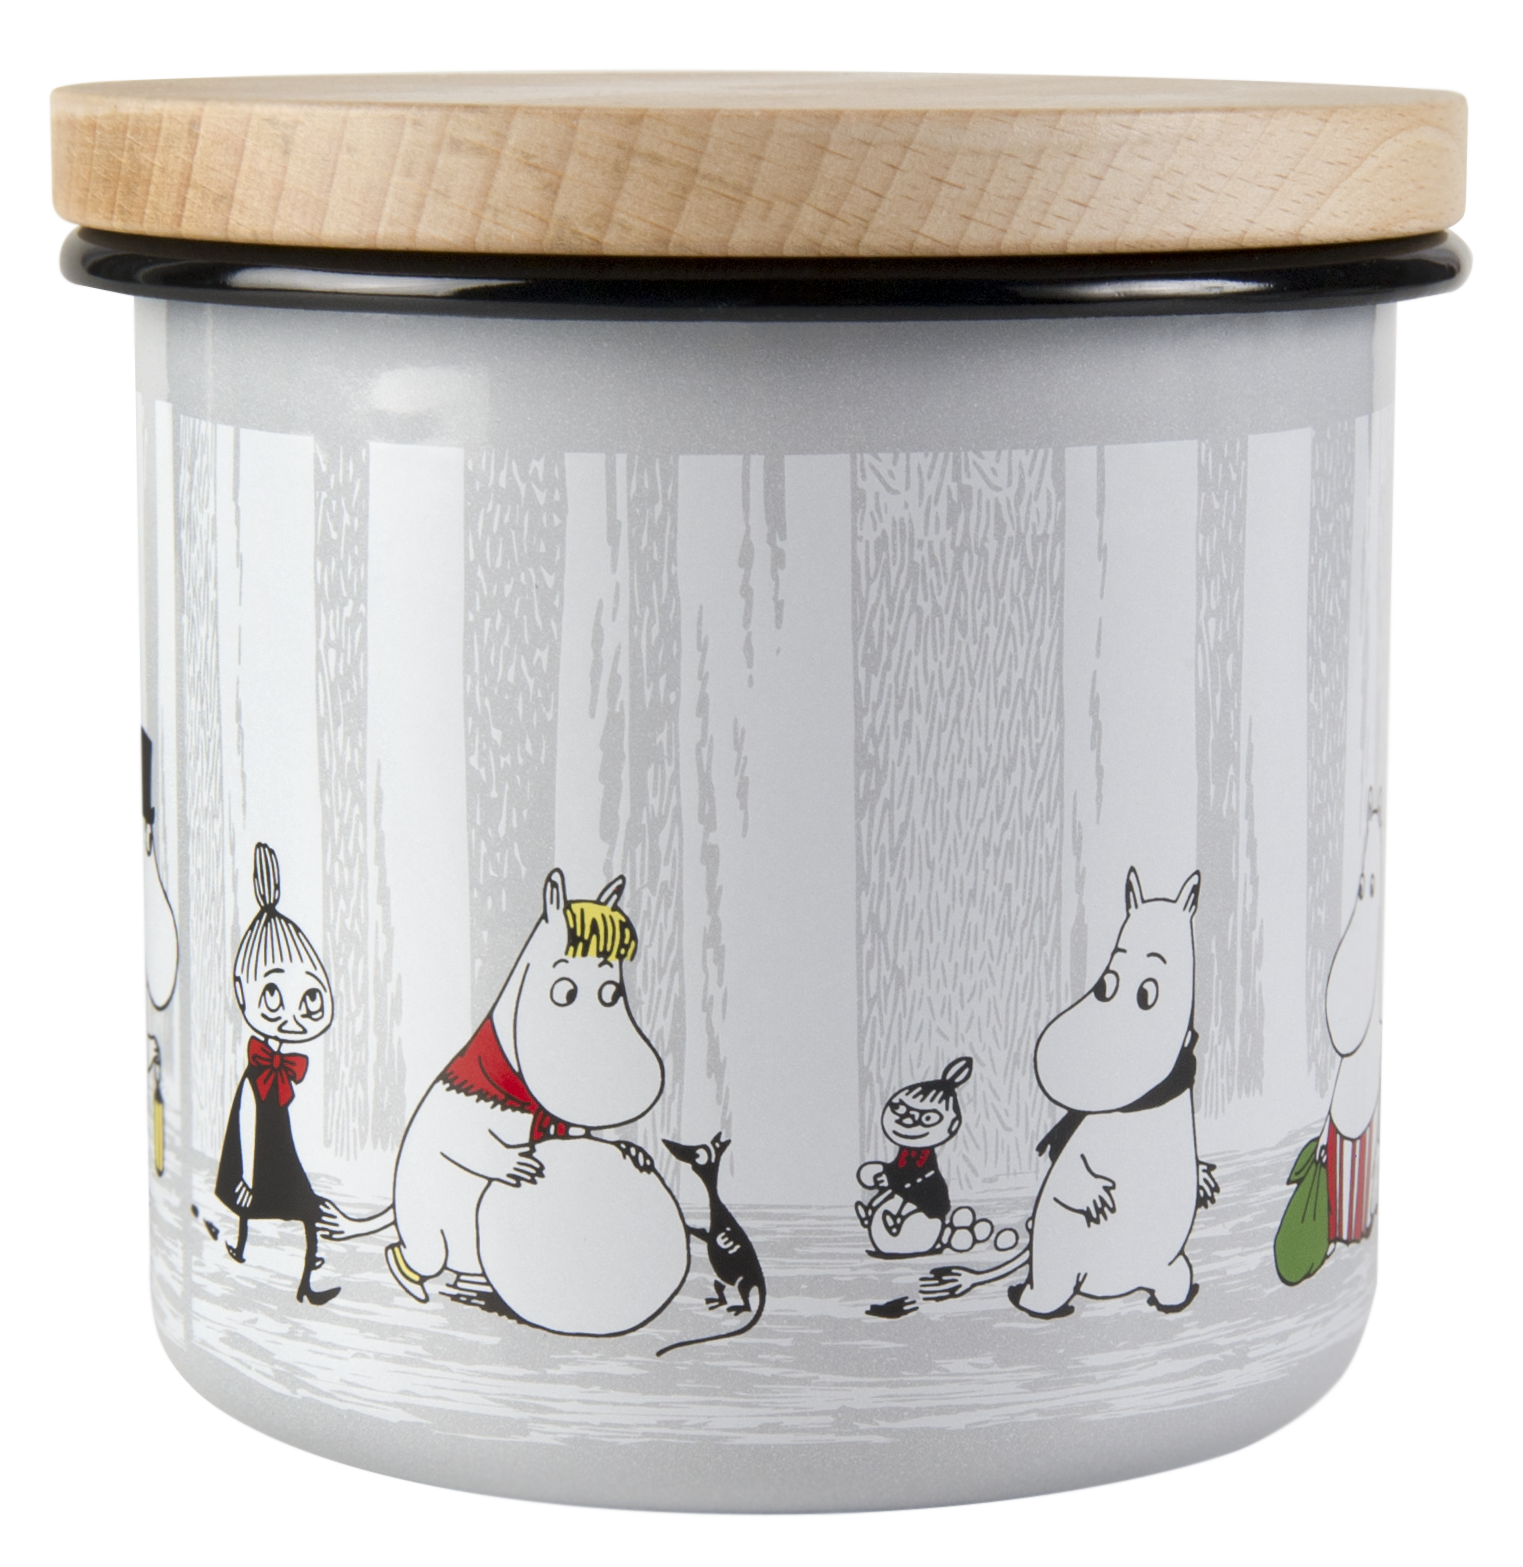 Muurla Moomin Winter Trip enamel jar with wooden lid 1,3L